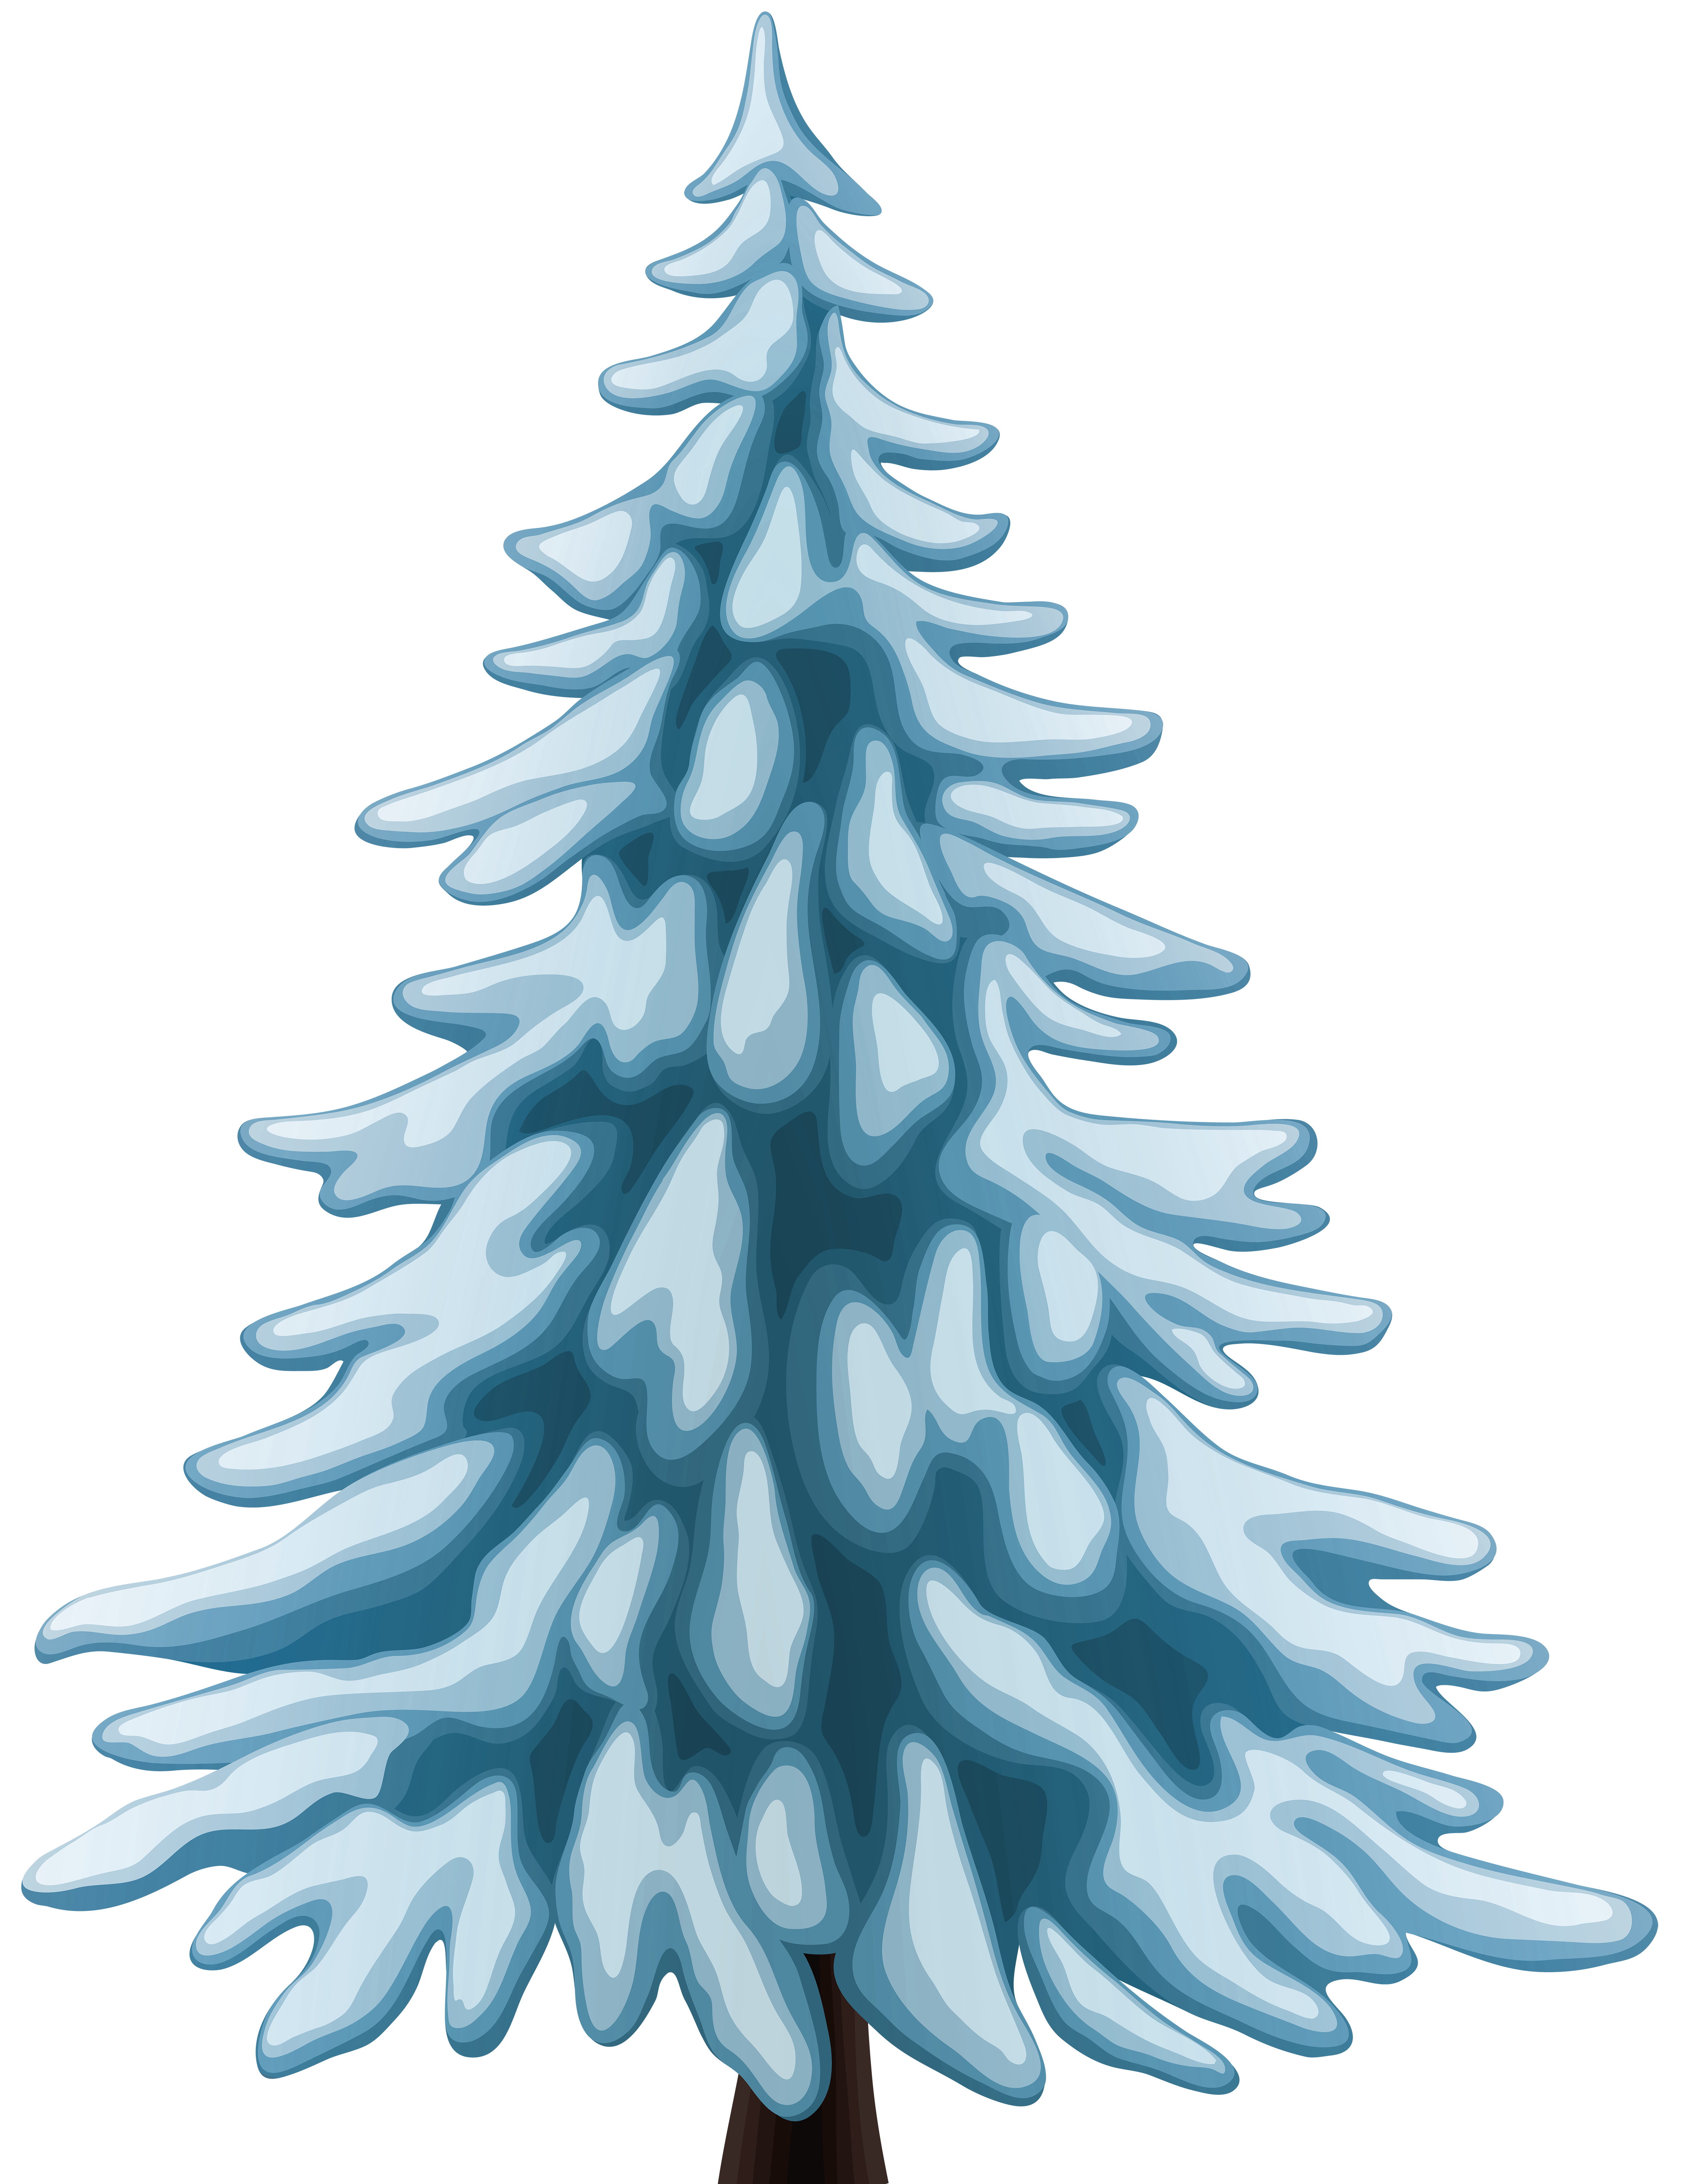 Pine tree png clip. Piano clipart winter